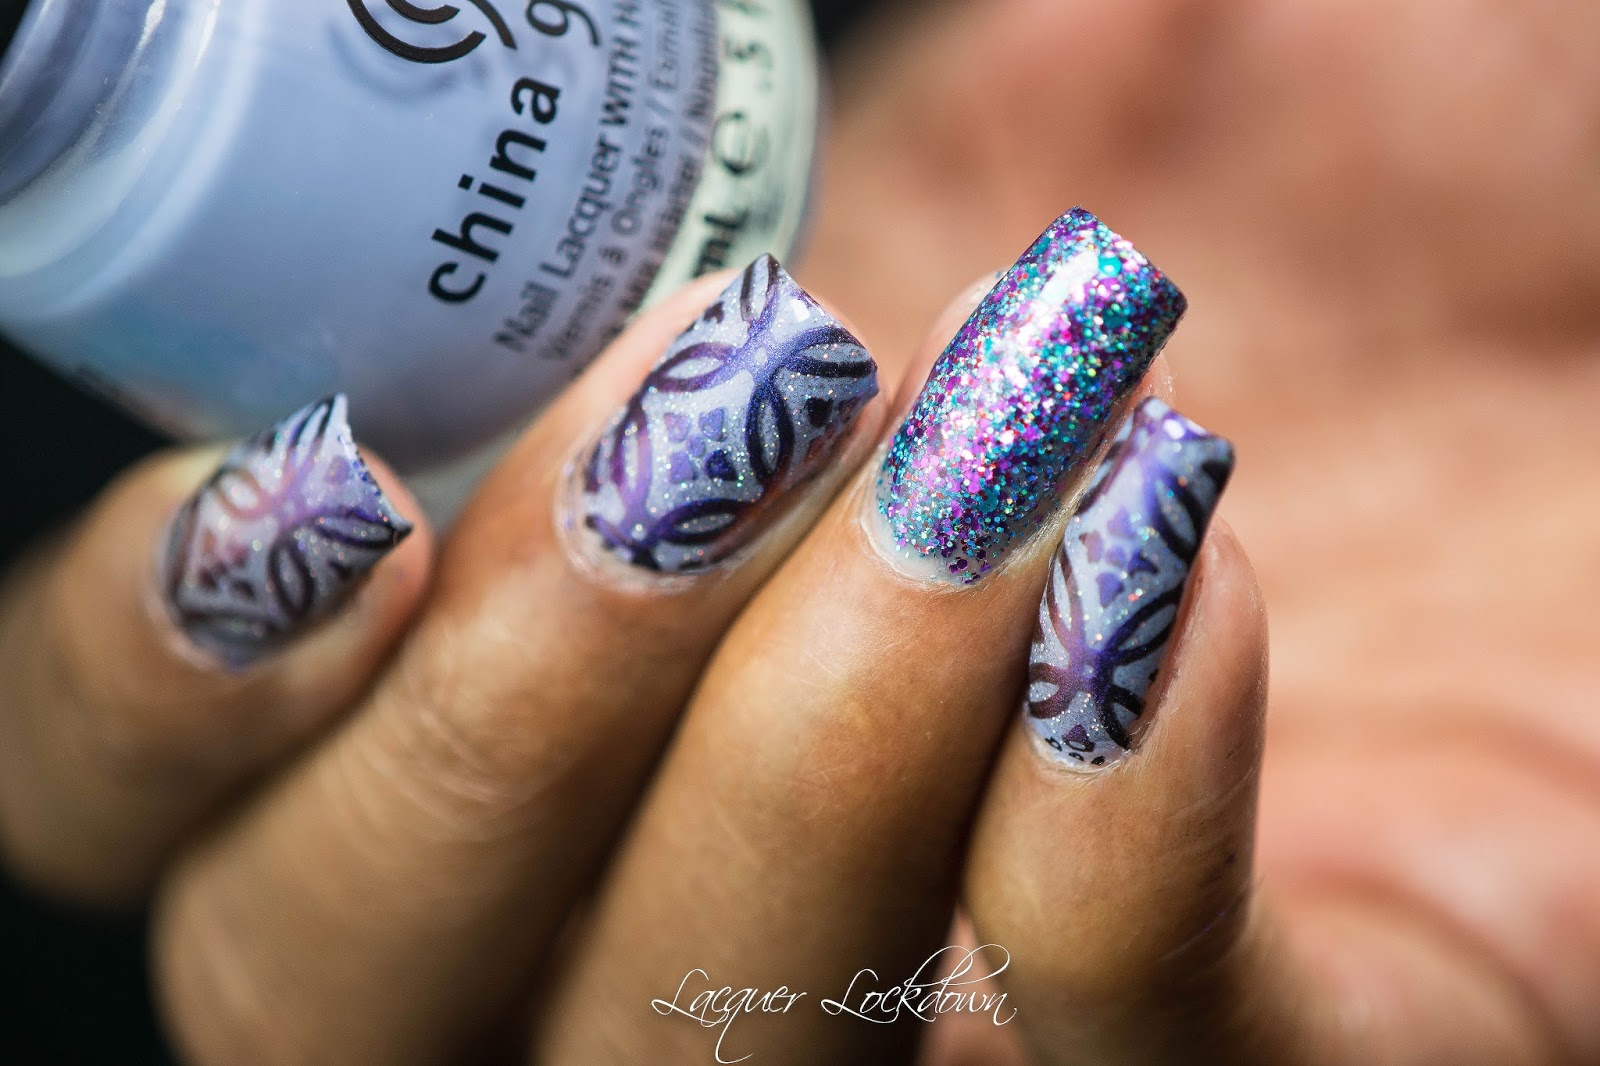 Lacquer Lockdown: Multi-Chrome Mirror Nails Pigment Abstract Stamped ...